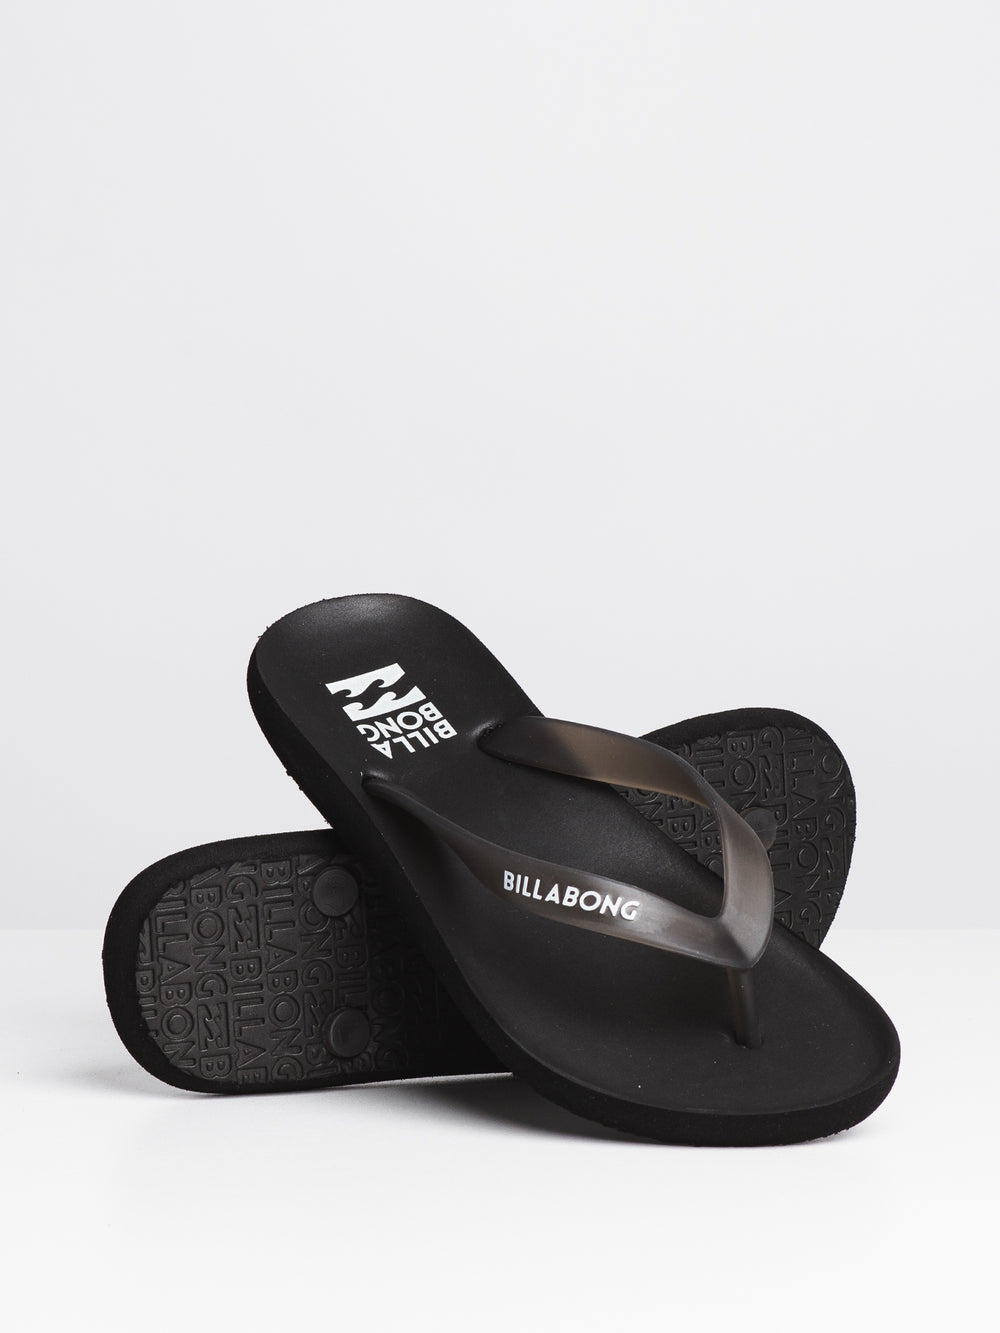 WOMENS BEACH BREAK - BLACK